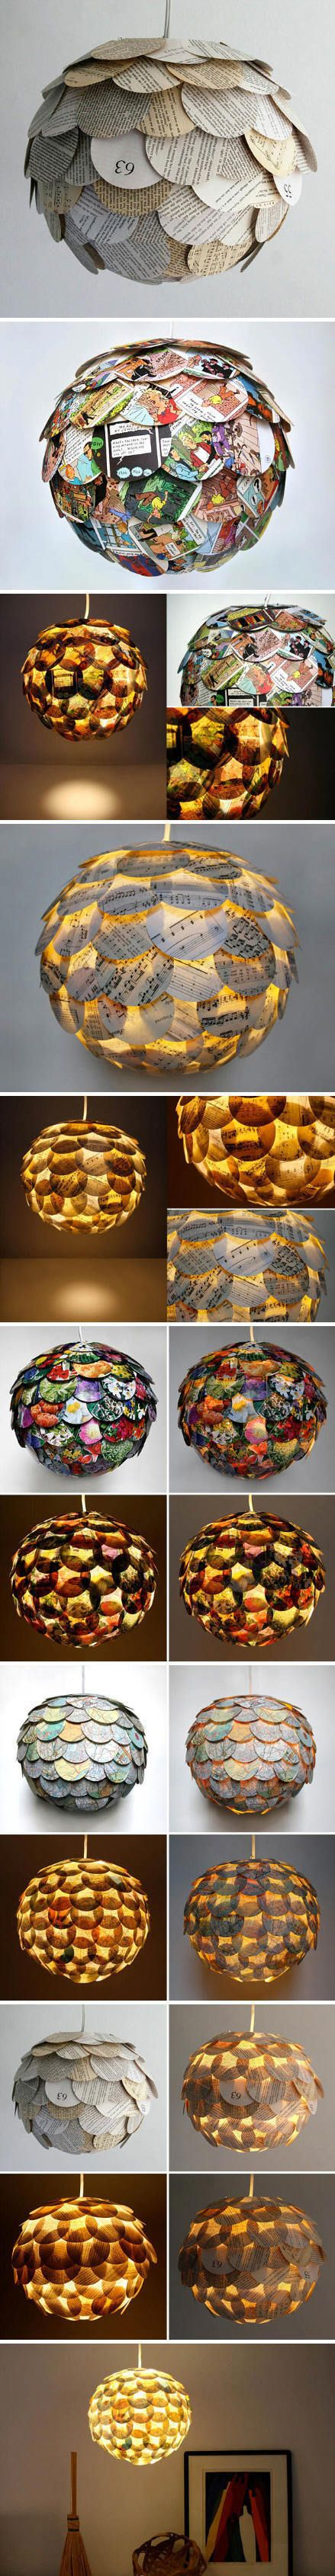 Allison Patrick lamps made of paper